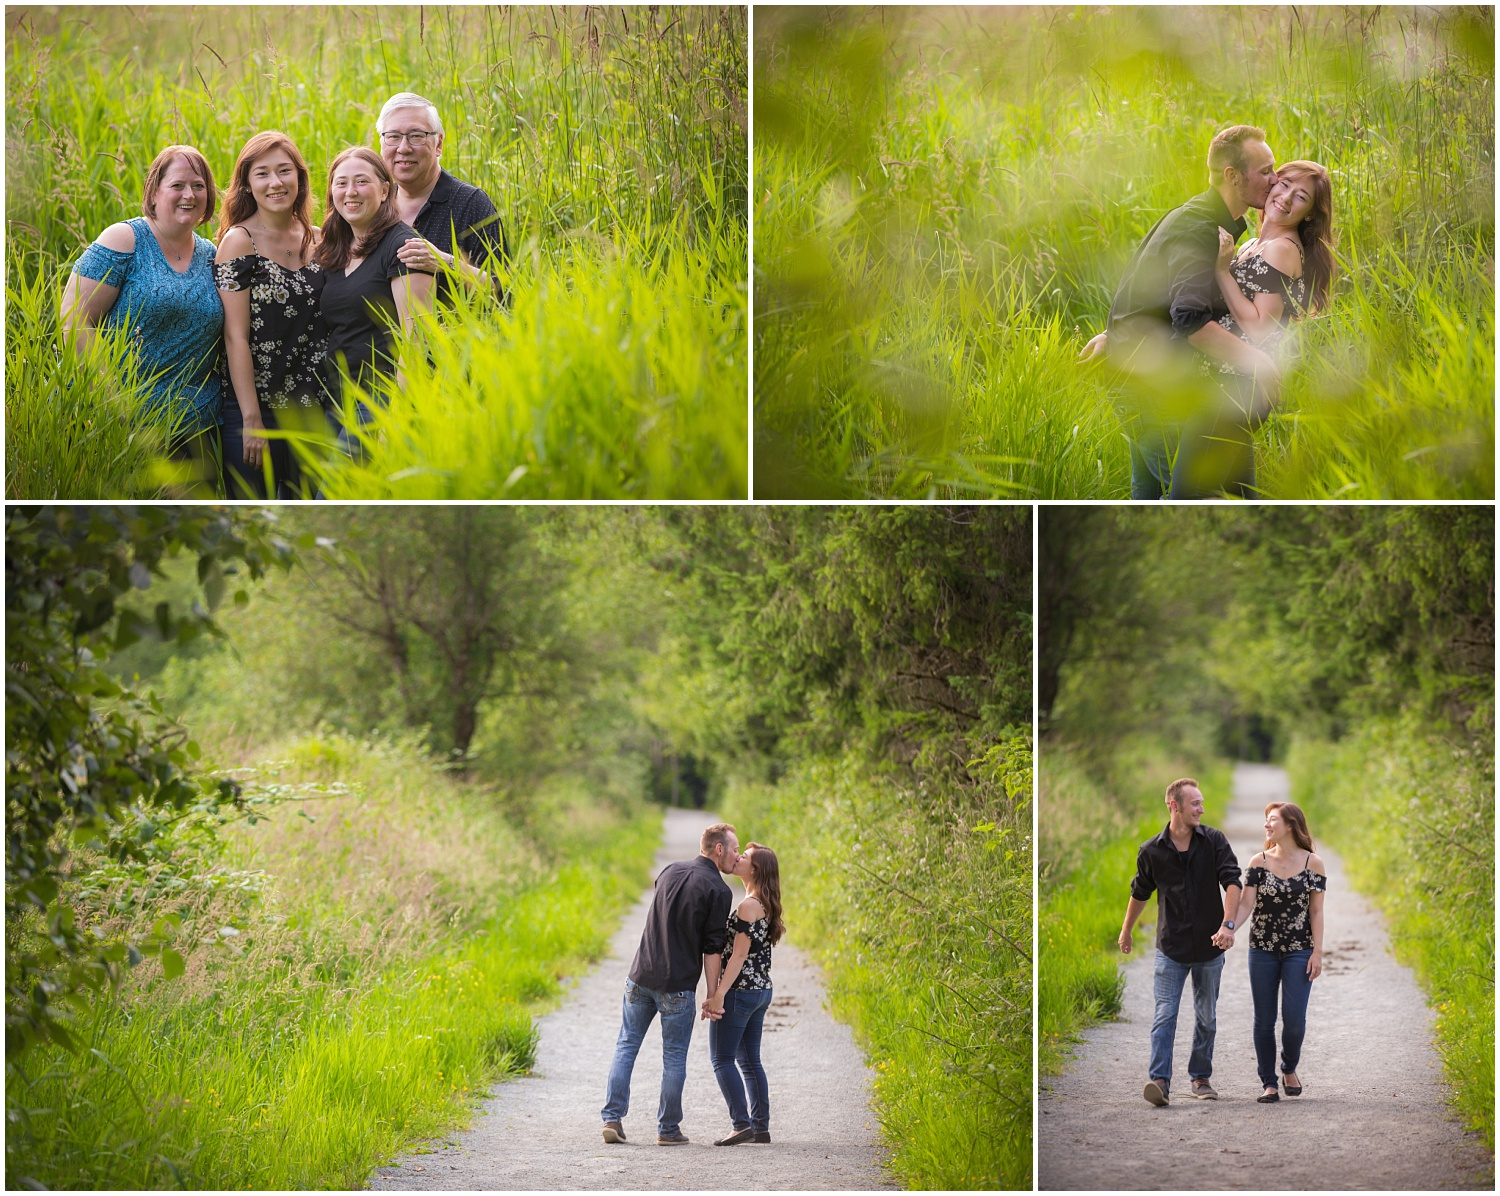 Amazing Day Photography - Campbell Valley Anniversary Session - Campbell Valely Family Session - Langely Family Photographer (6).jpg